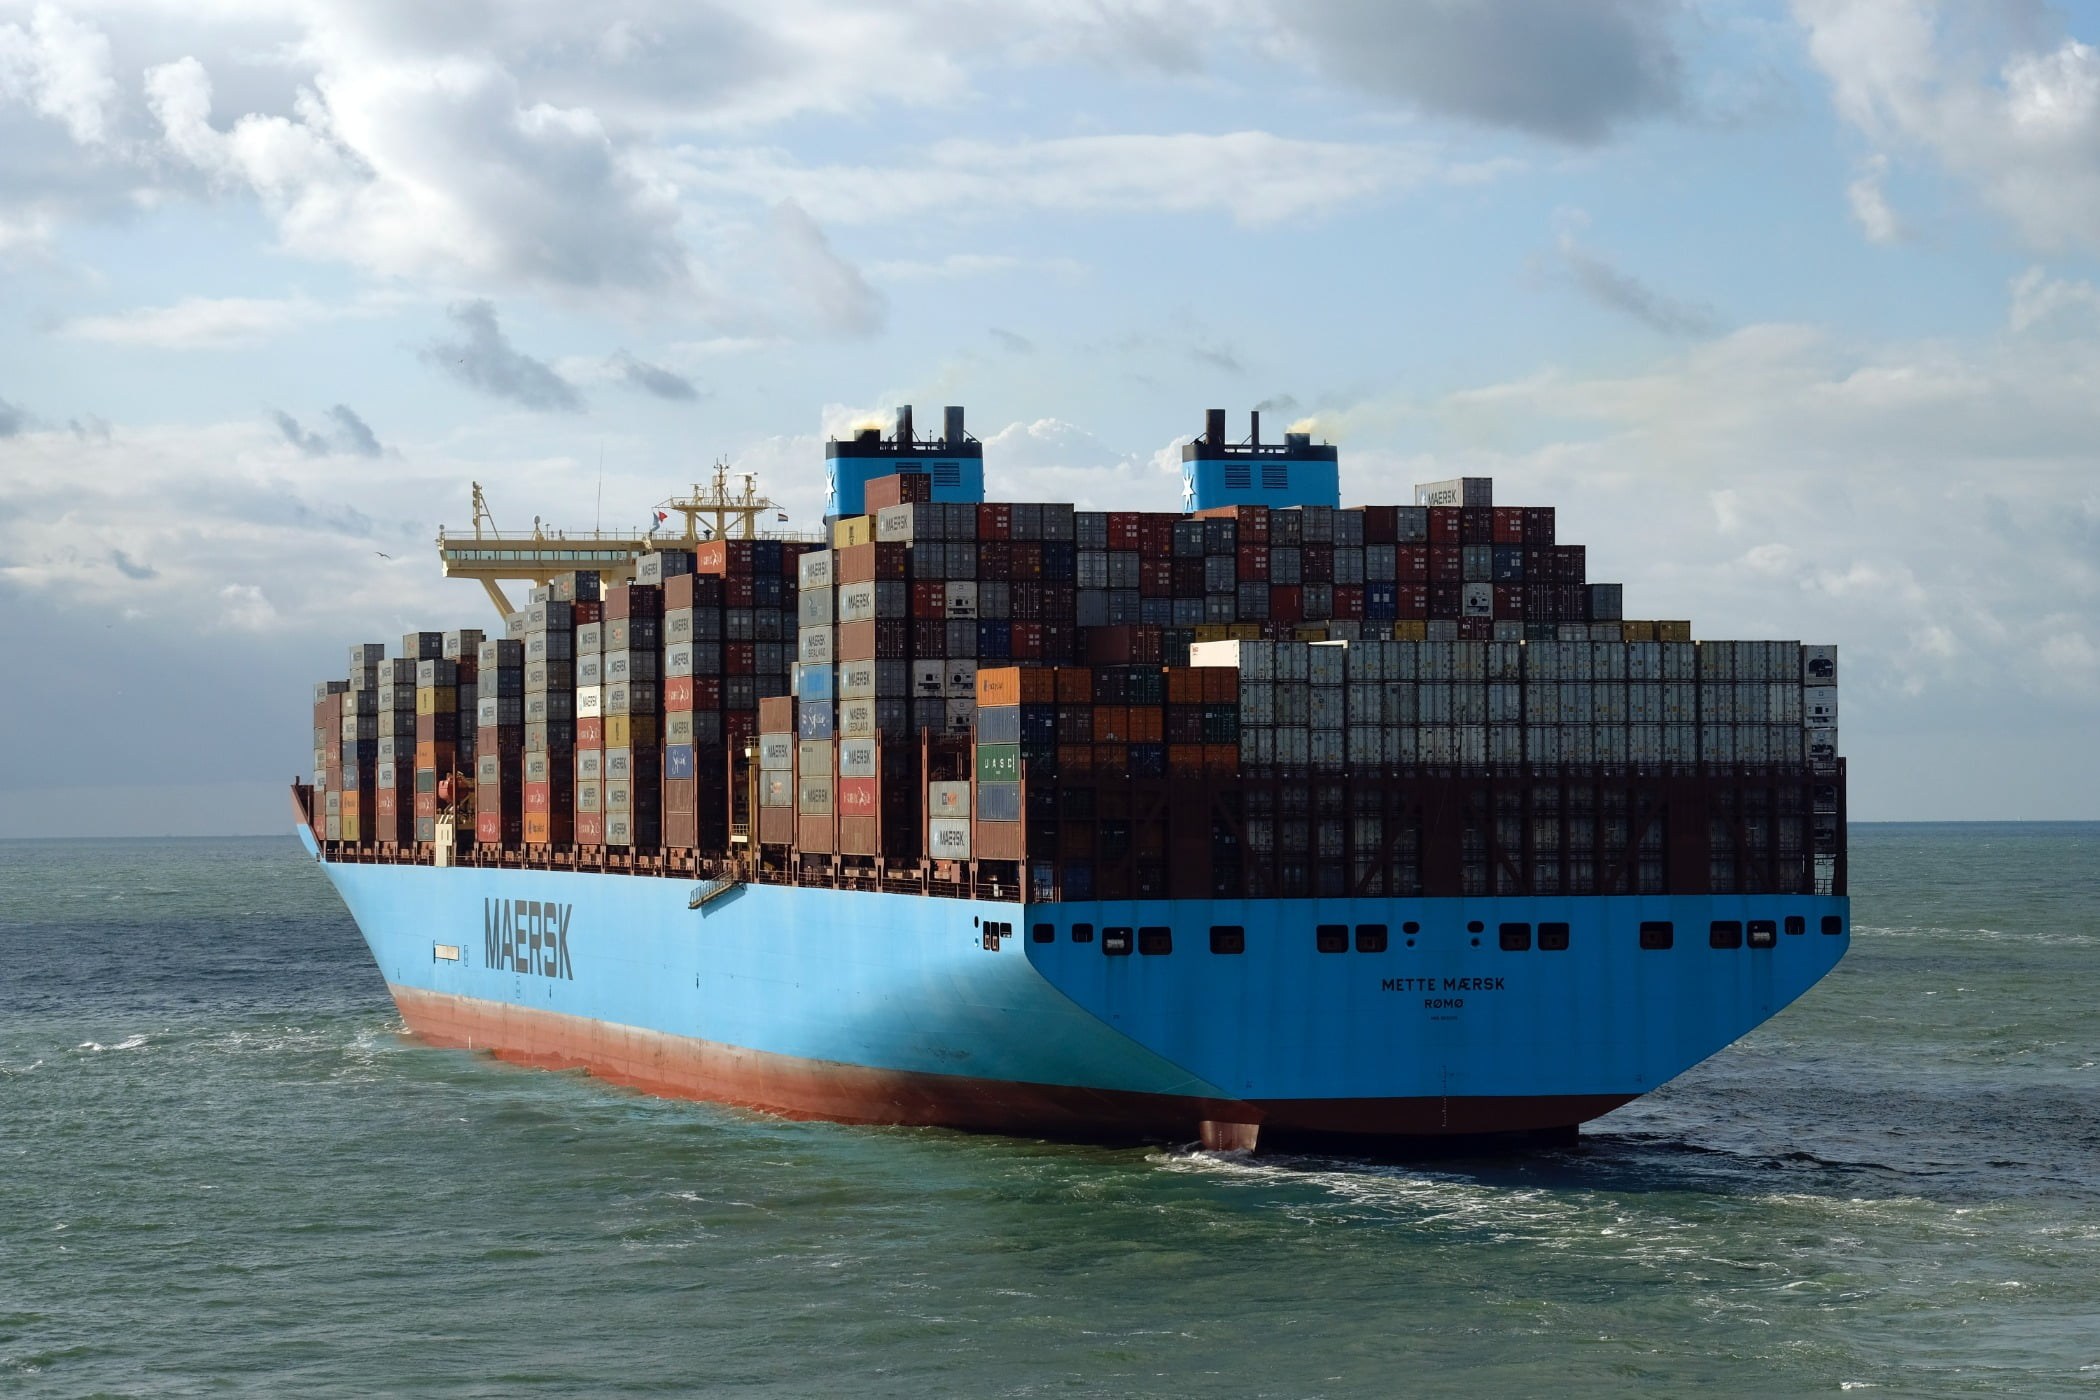 Metter Maersk while leaving the port of Rotterdam